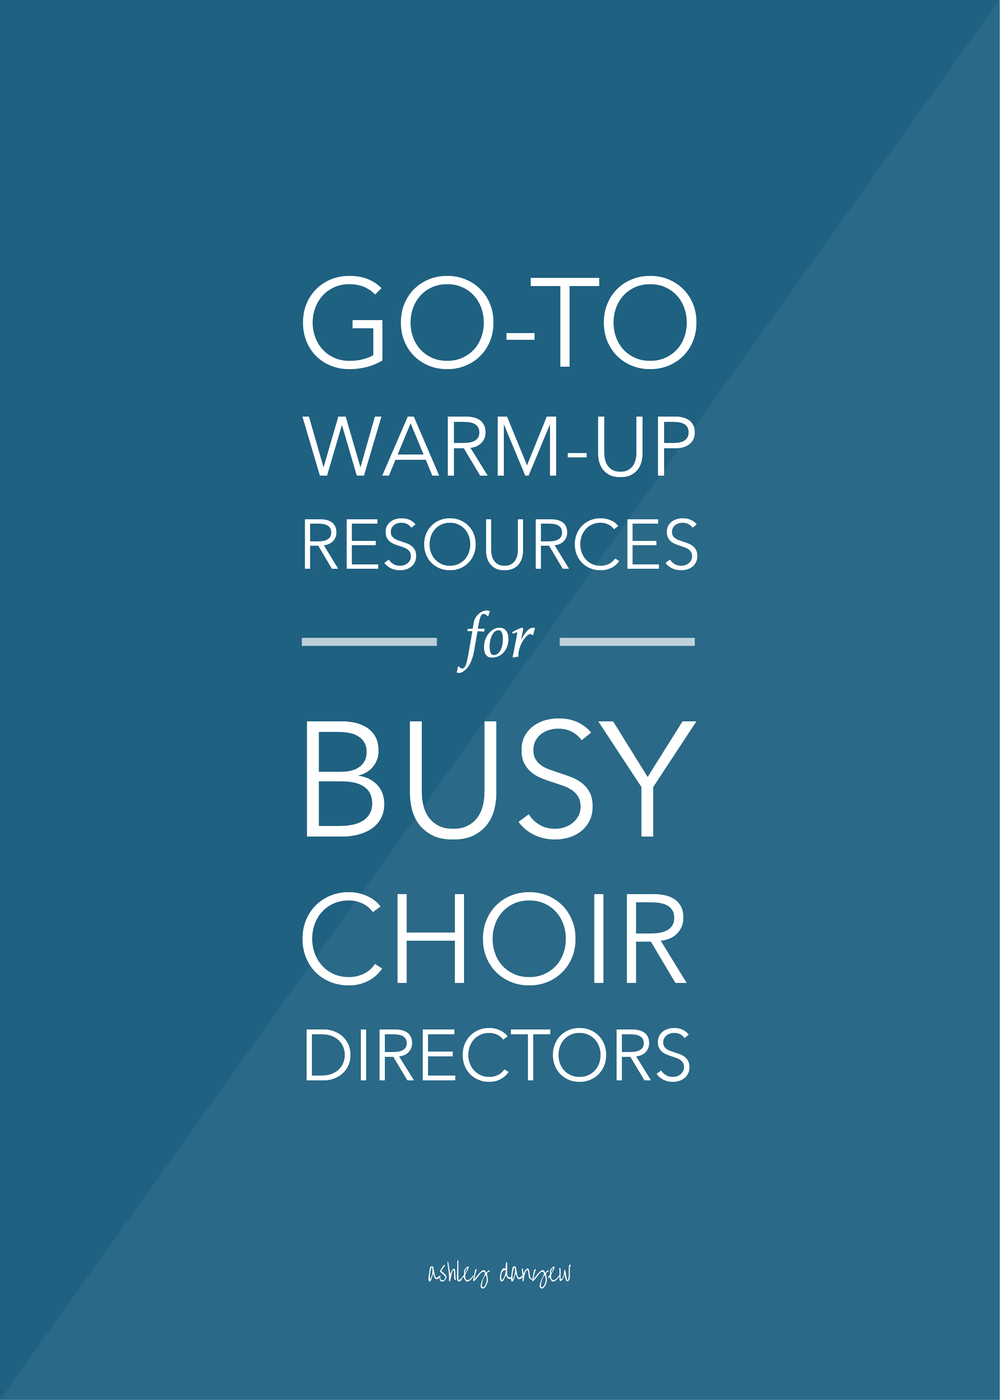 Go-To Warm-Up Resources for Busy Choir Directors